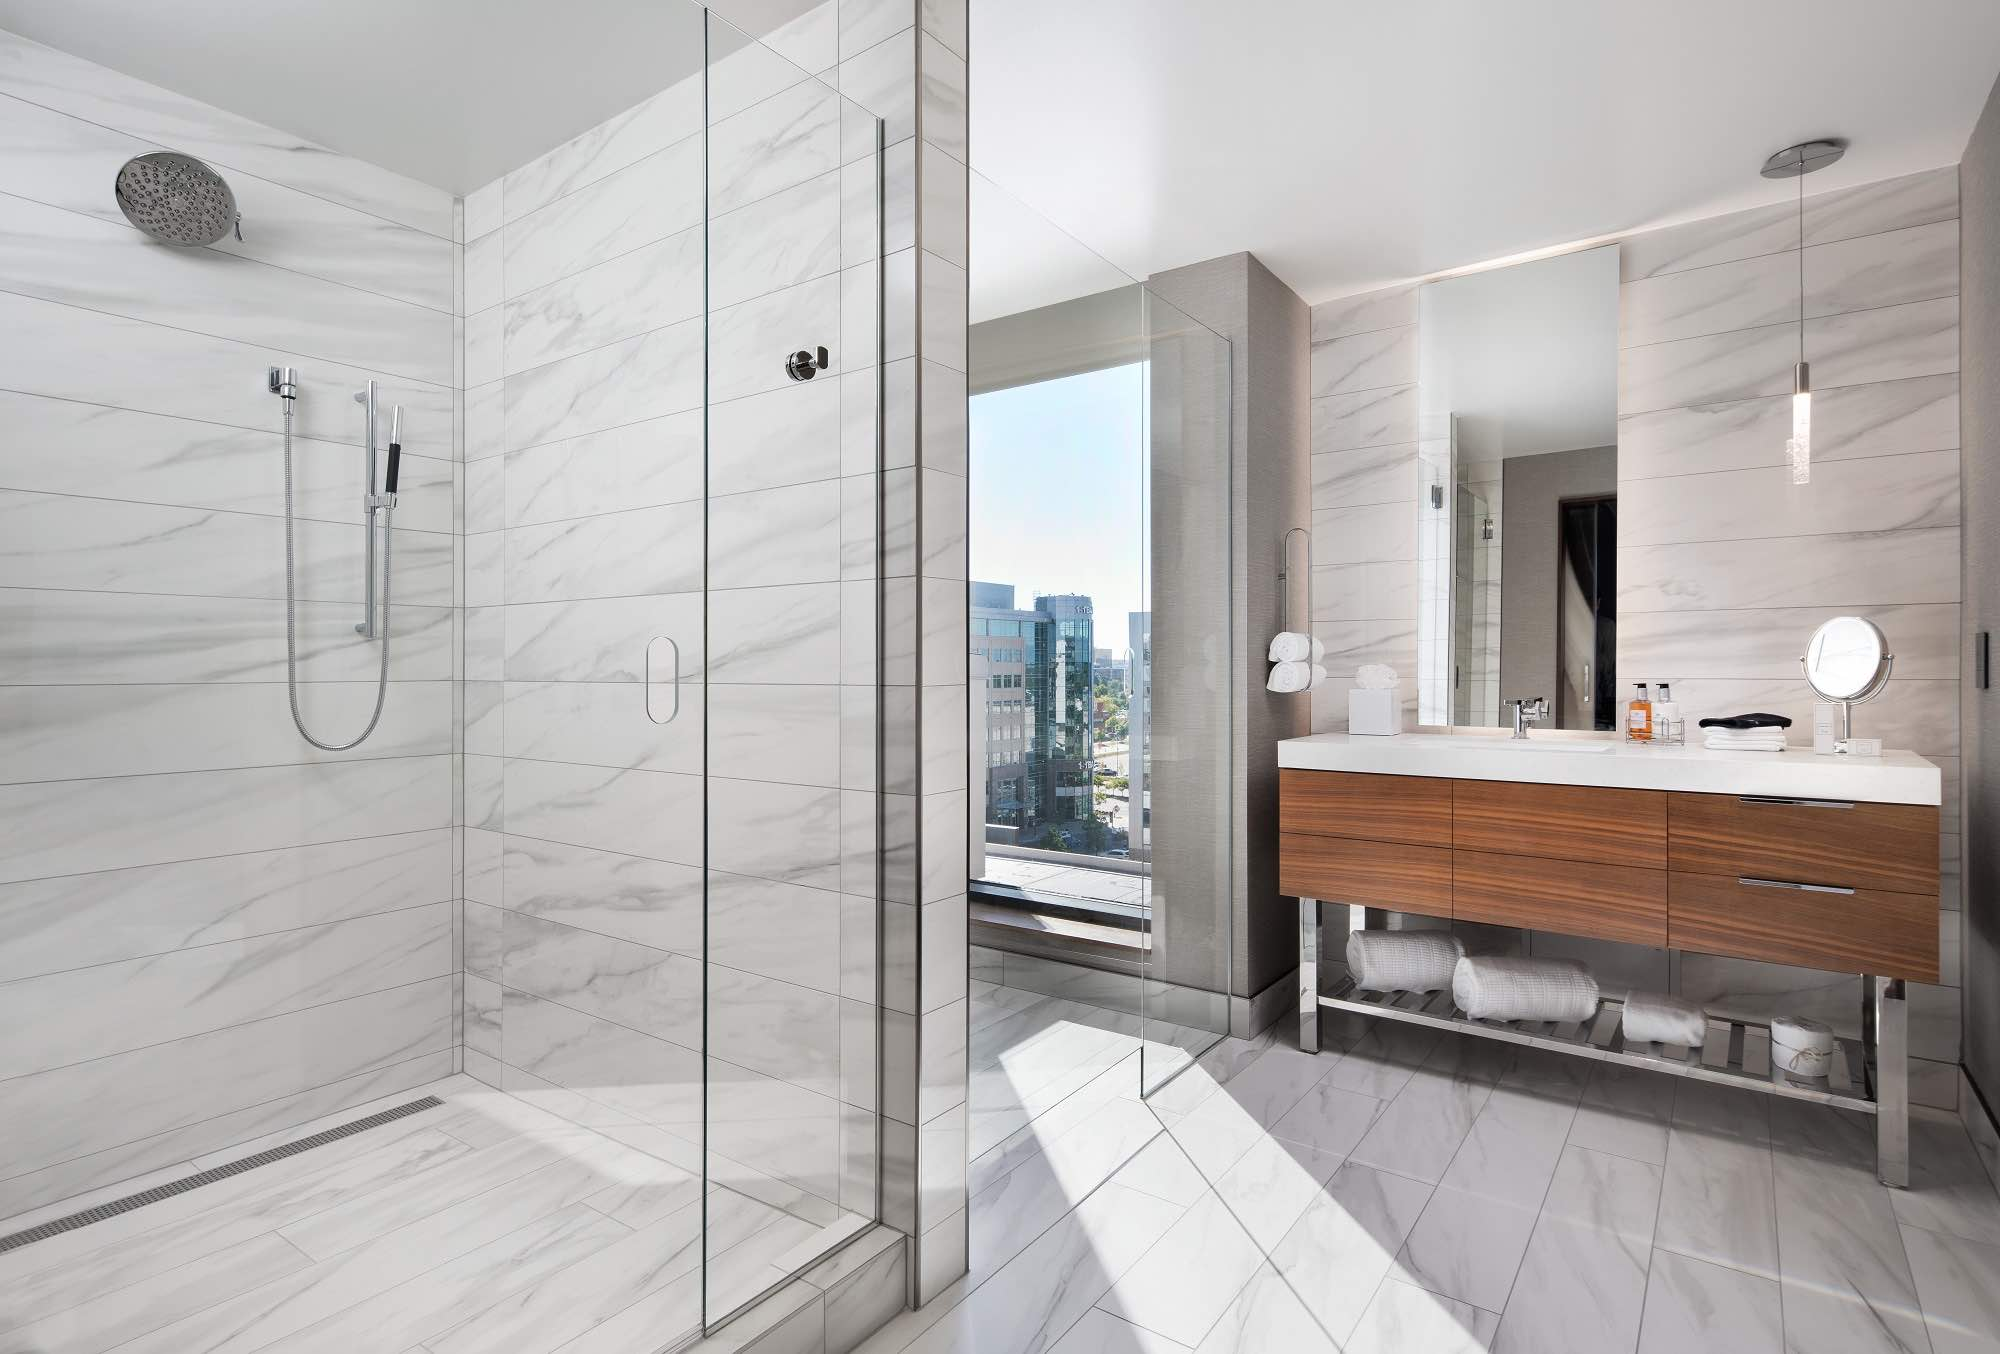 The Jacquard, Autograph Collection luxury hotels on Denver bathroom with city view